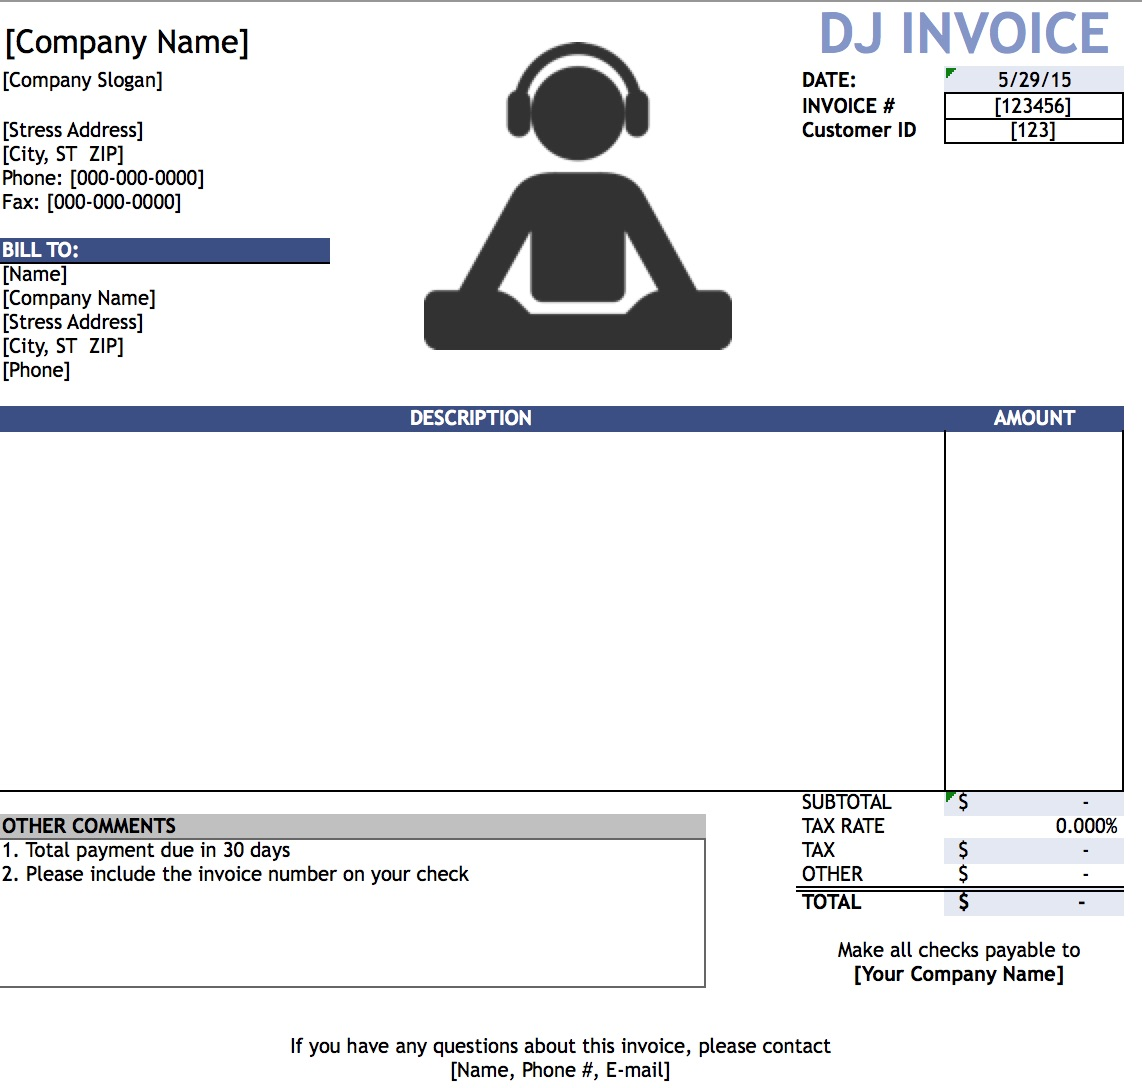 Free DJ Disc Jockey Invoice Template Excel PDF Word Doc - Free invoices to print for service business